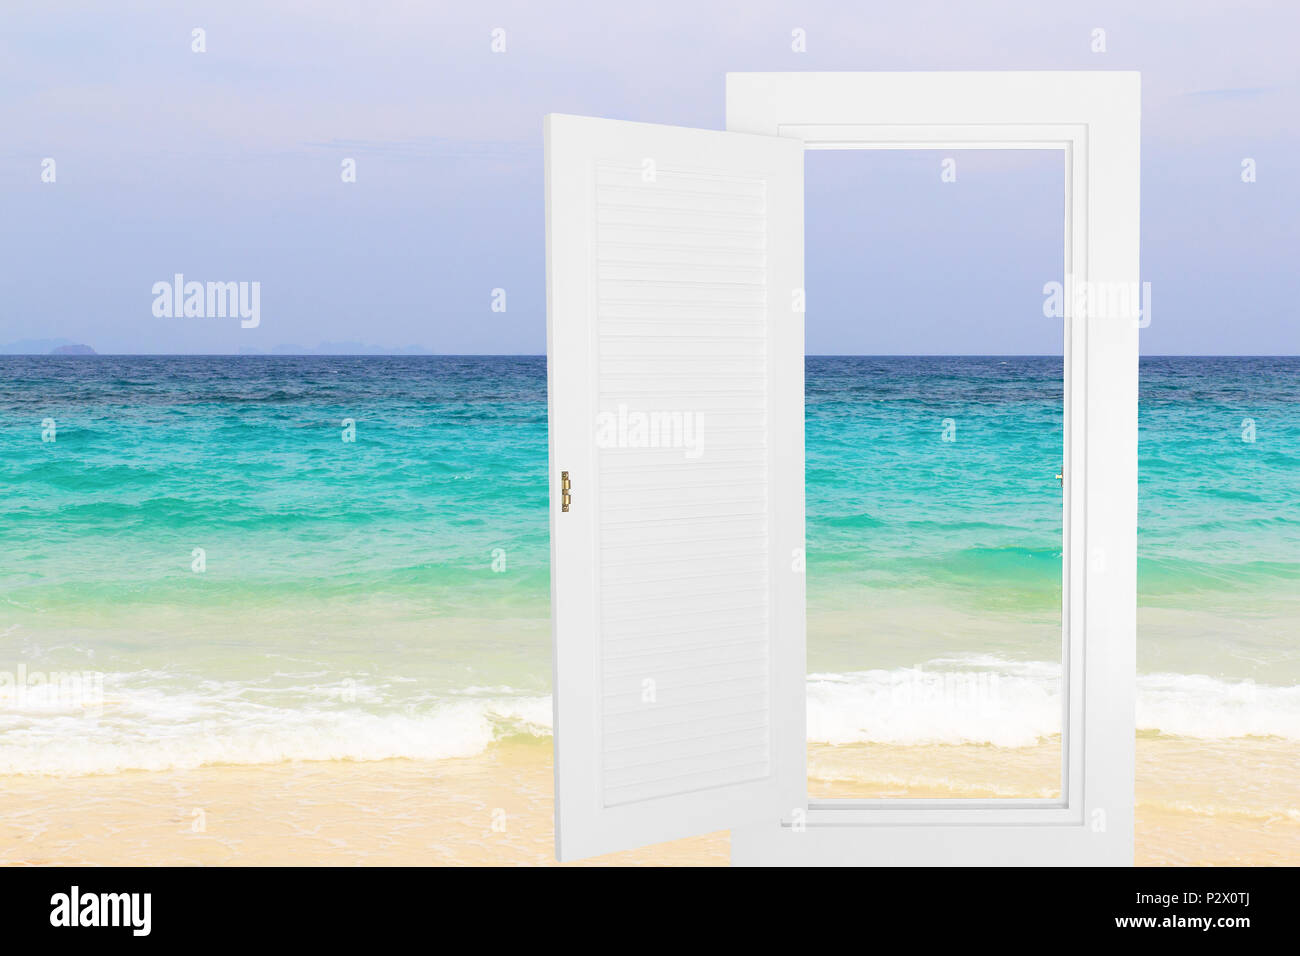 White window open frame with beach, horizontal landscape idea concept background. Stock Photo